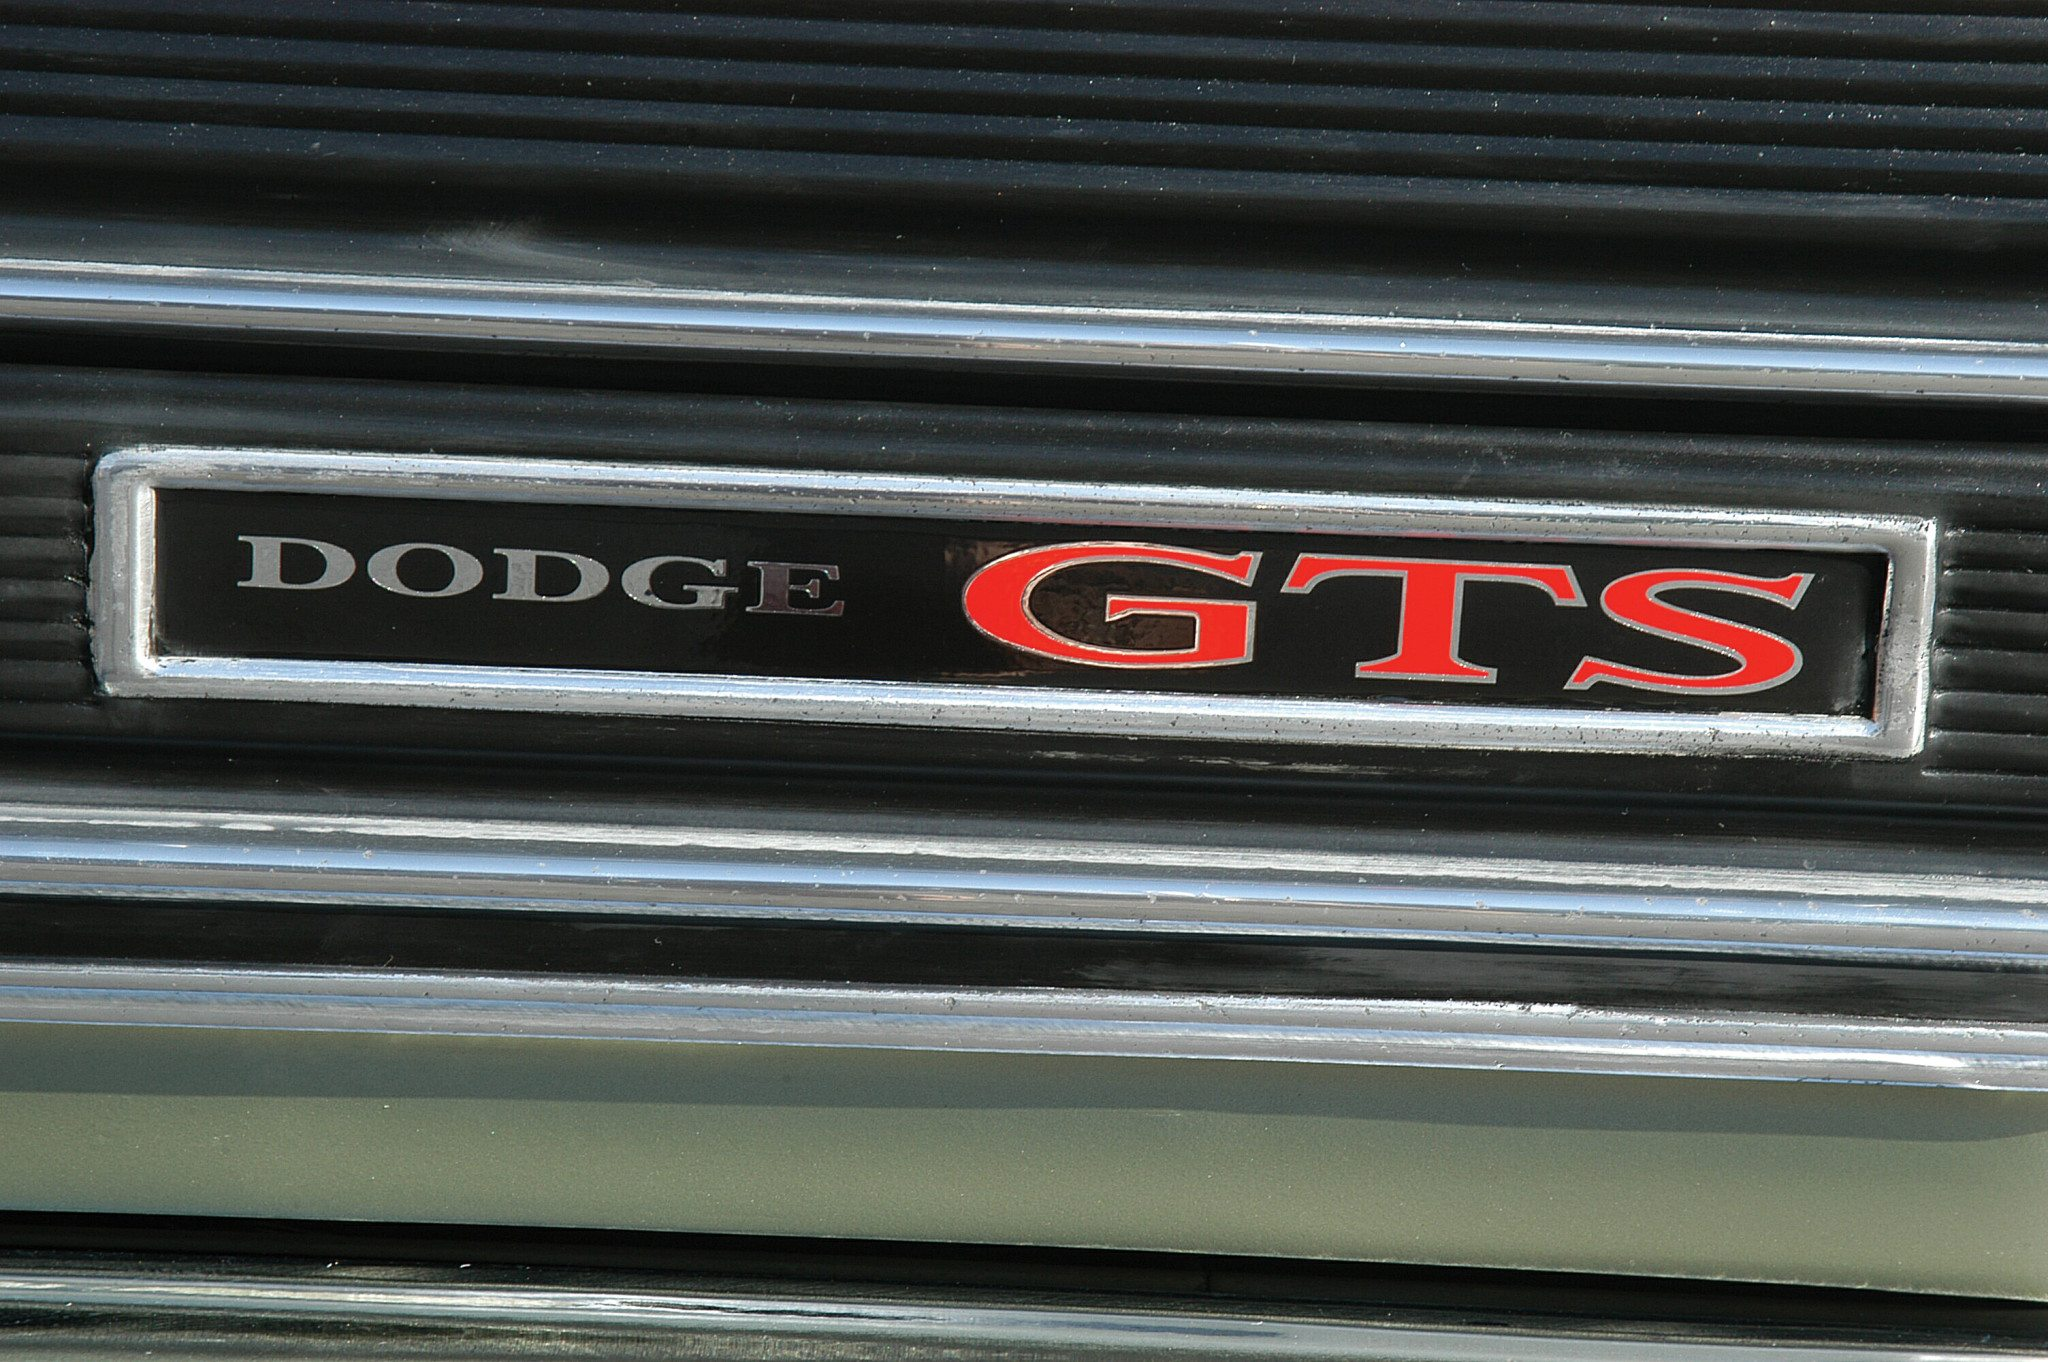 1969 Dodge Dart 340 GTS Grill Badge